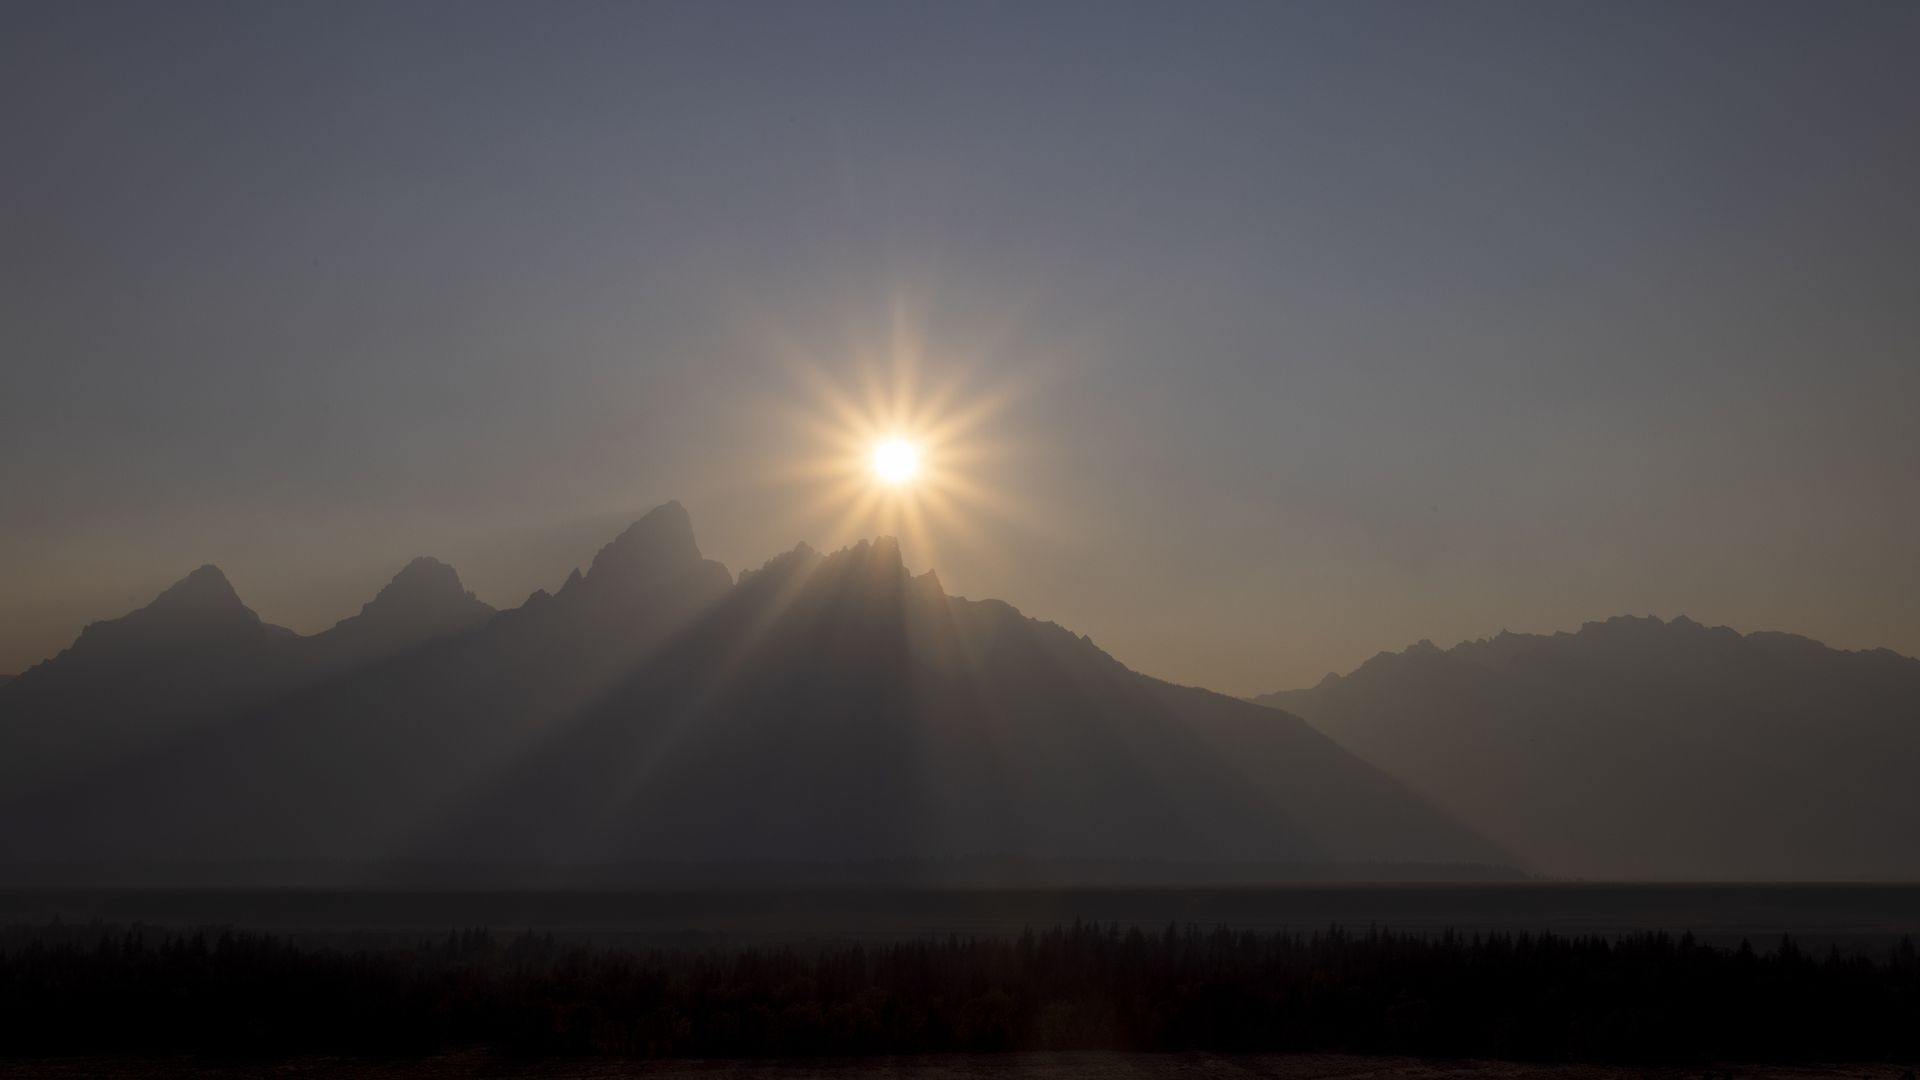 The sun sets behind the Grand Teton peak, shrouded in smoke from regional wildfires July 14, 2021 at Grand Teton National Park.